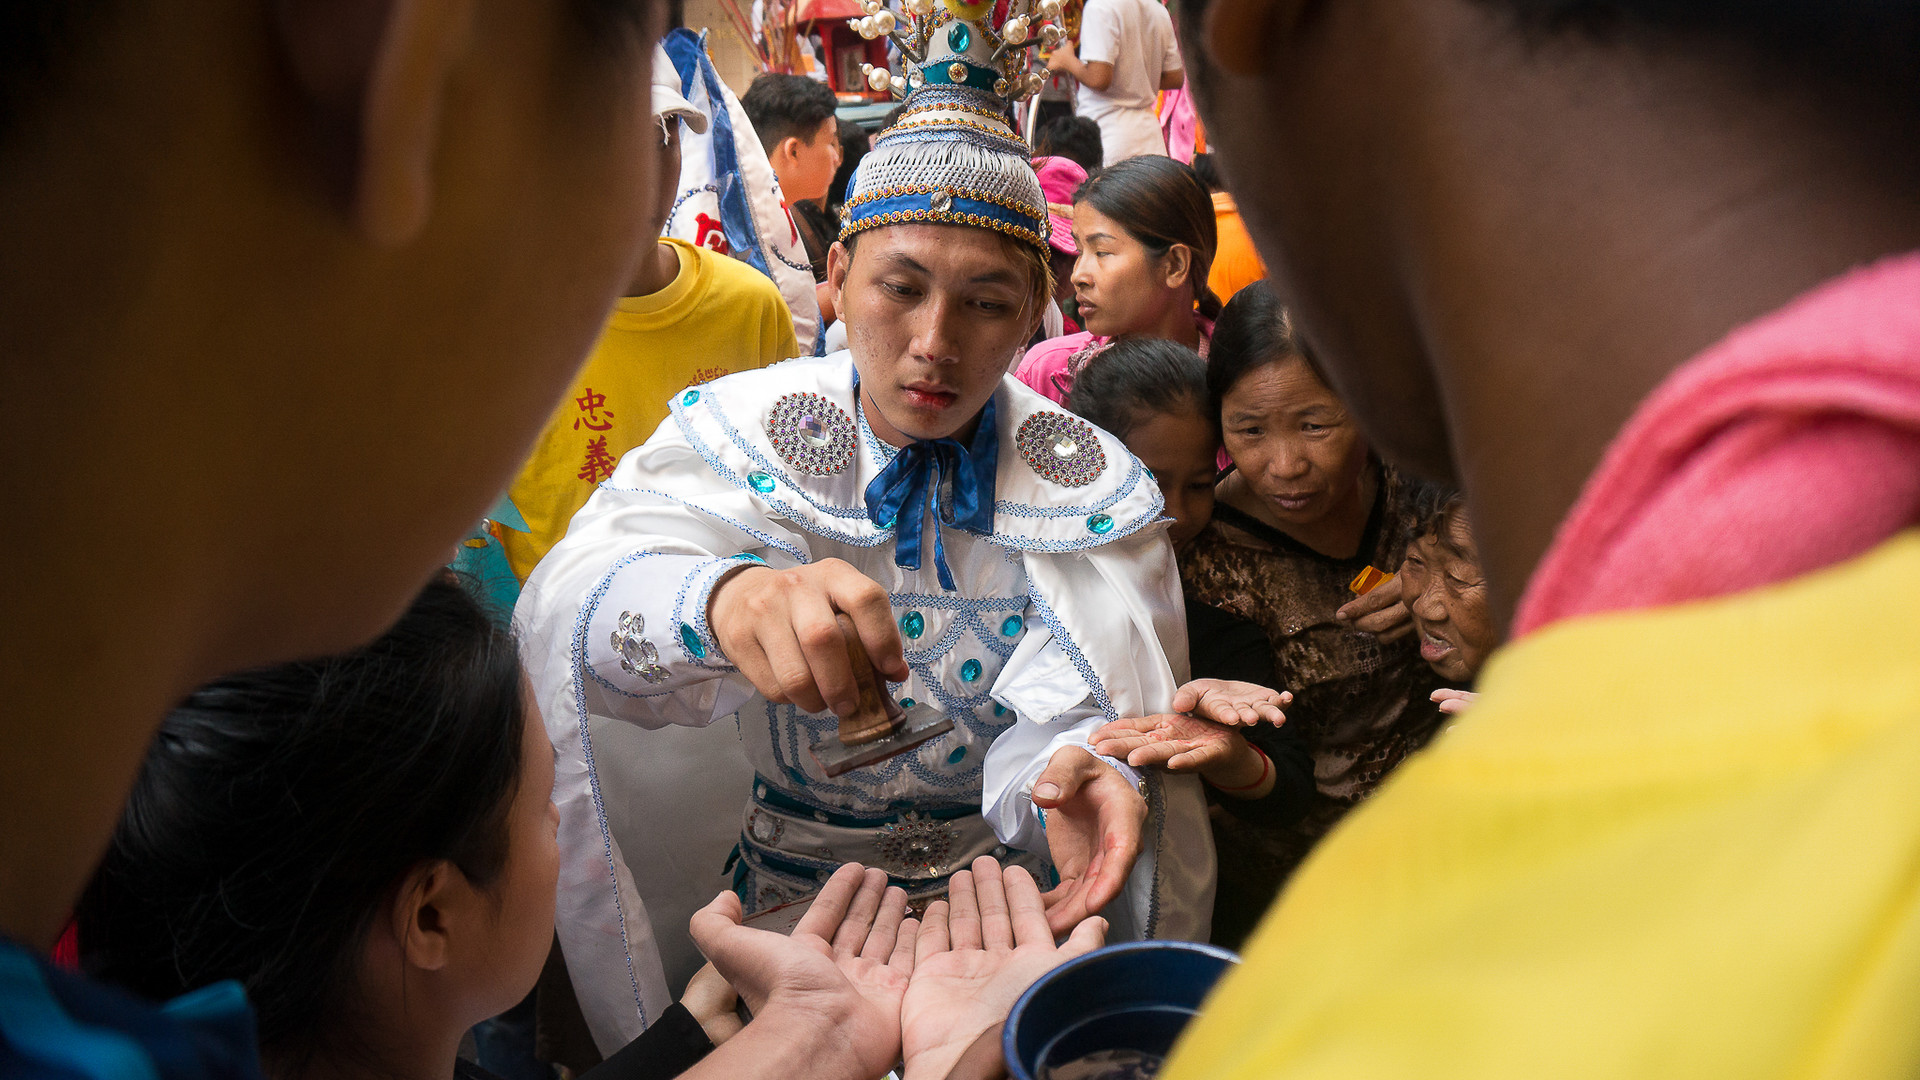 A spirit medium hands out blessings at Hai Neak Dta festival in Phnom Penh. These photos were published by United Catholics Asia News